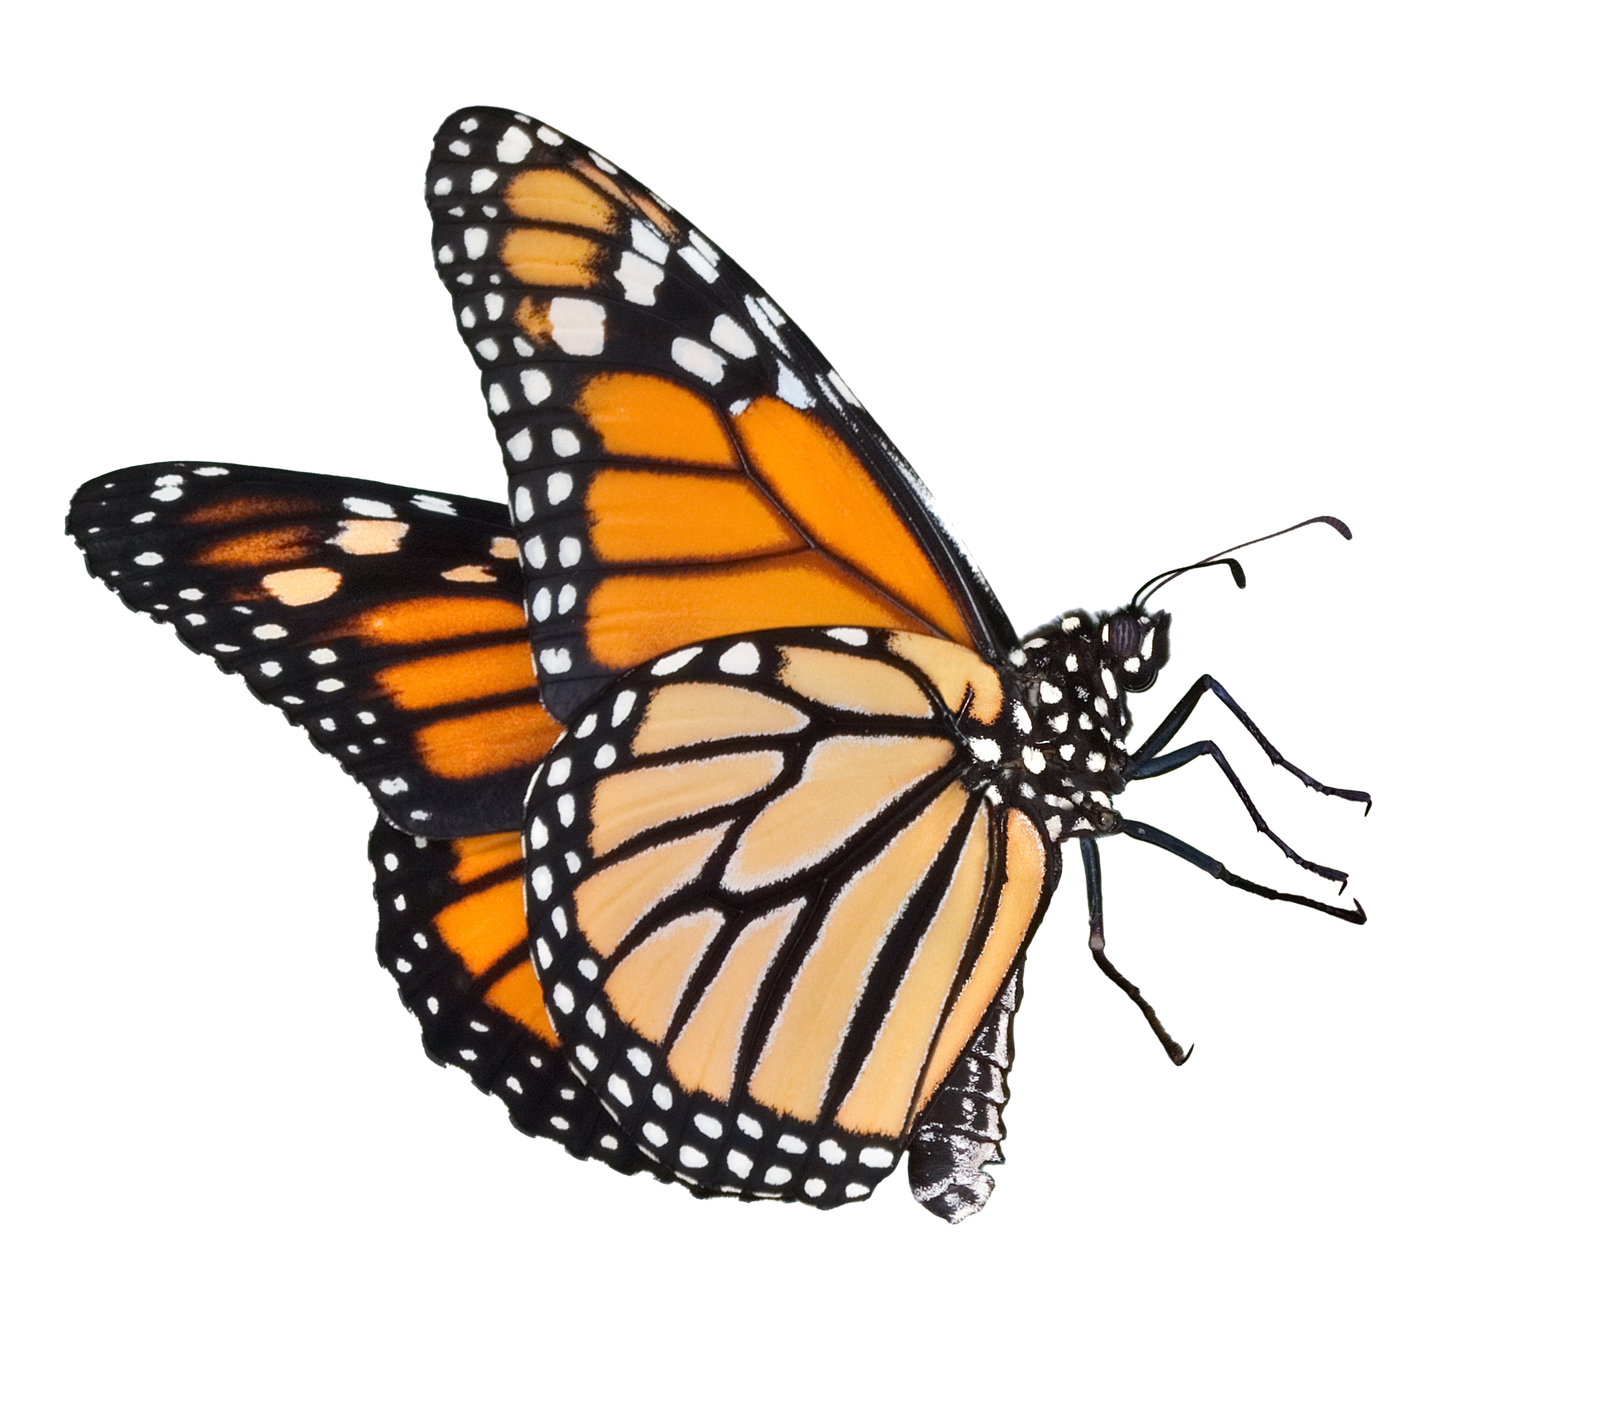 Butterfly png images. Transparent pluspng butterflies image